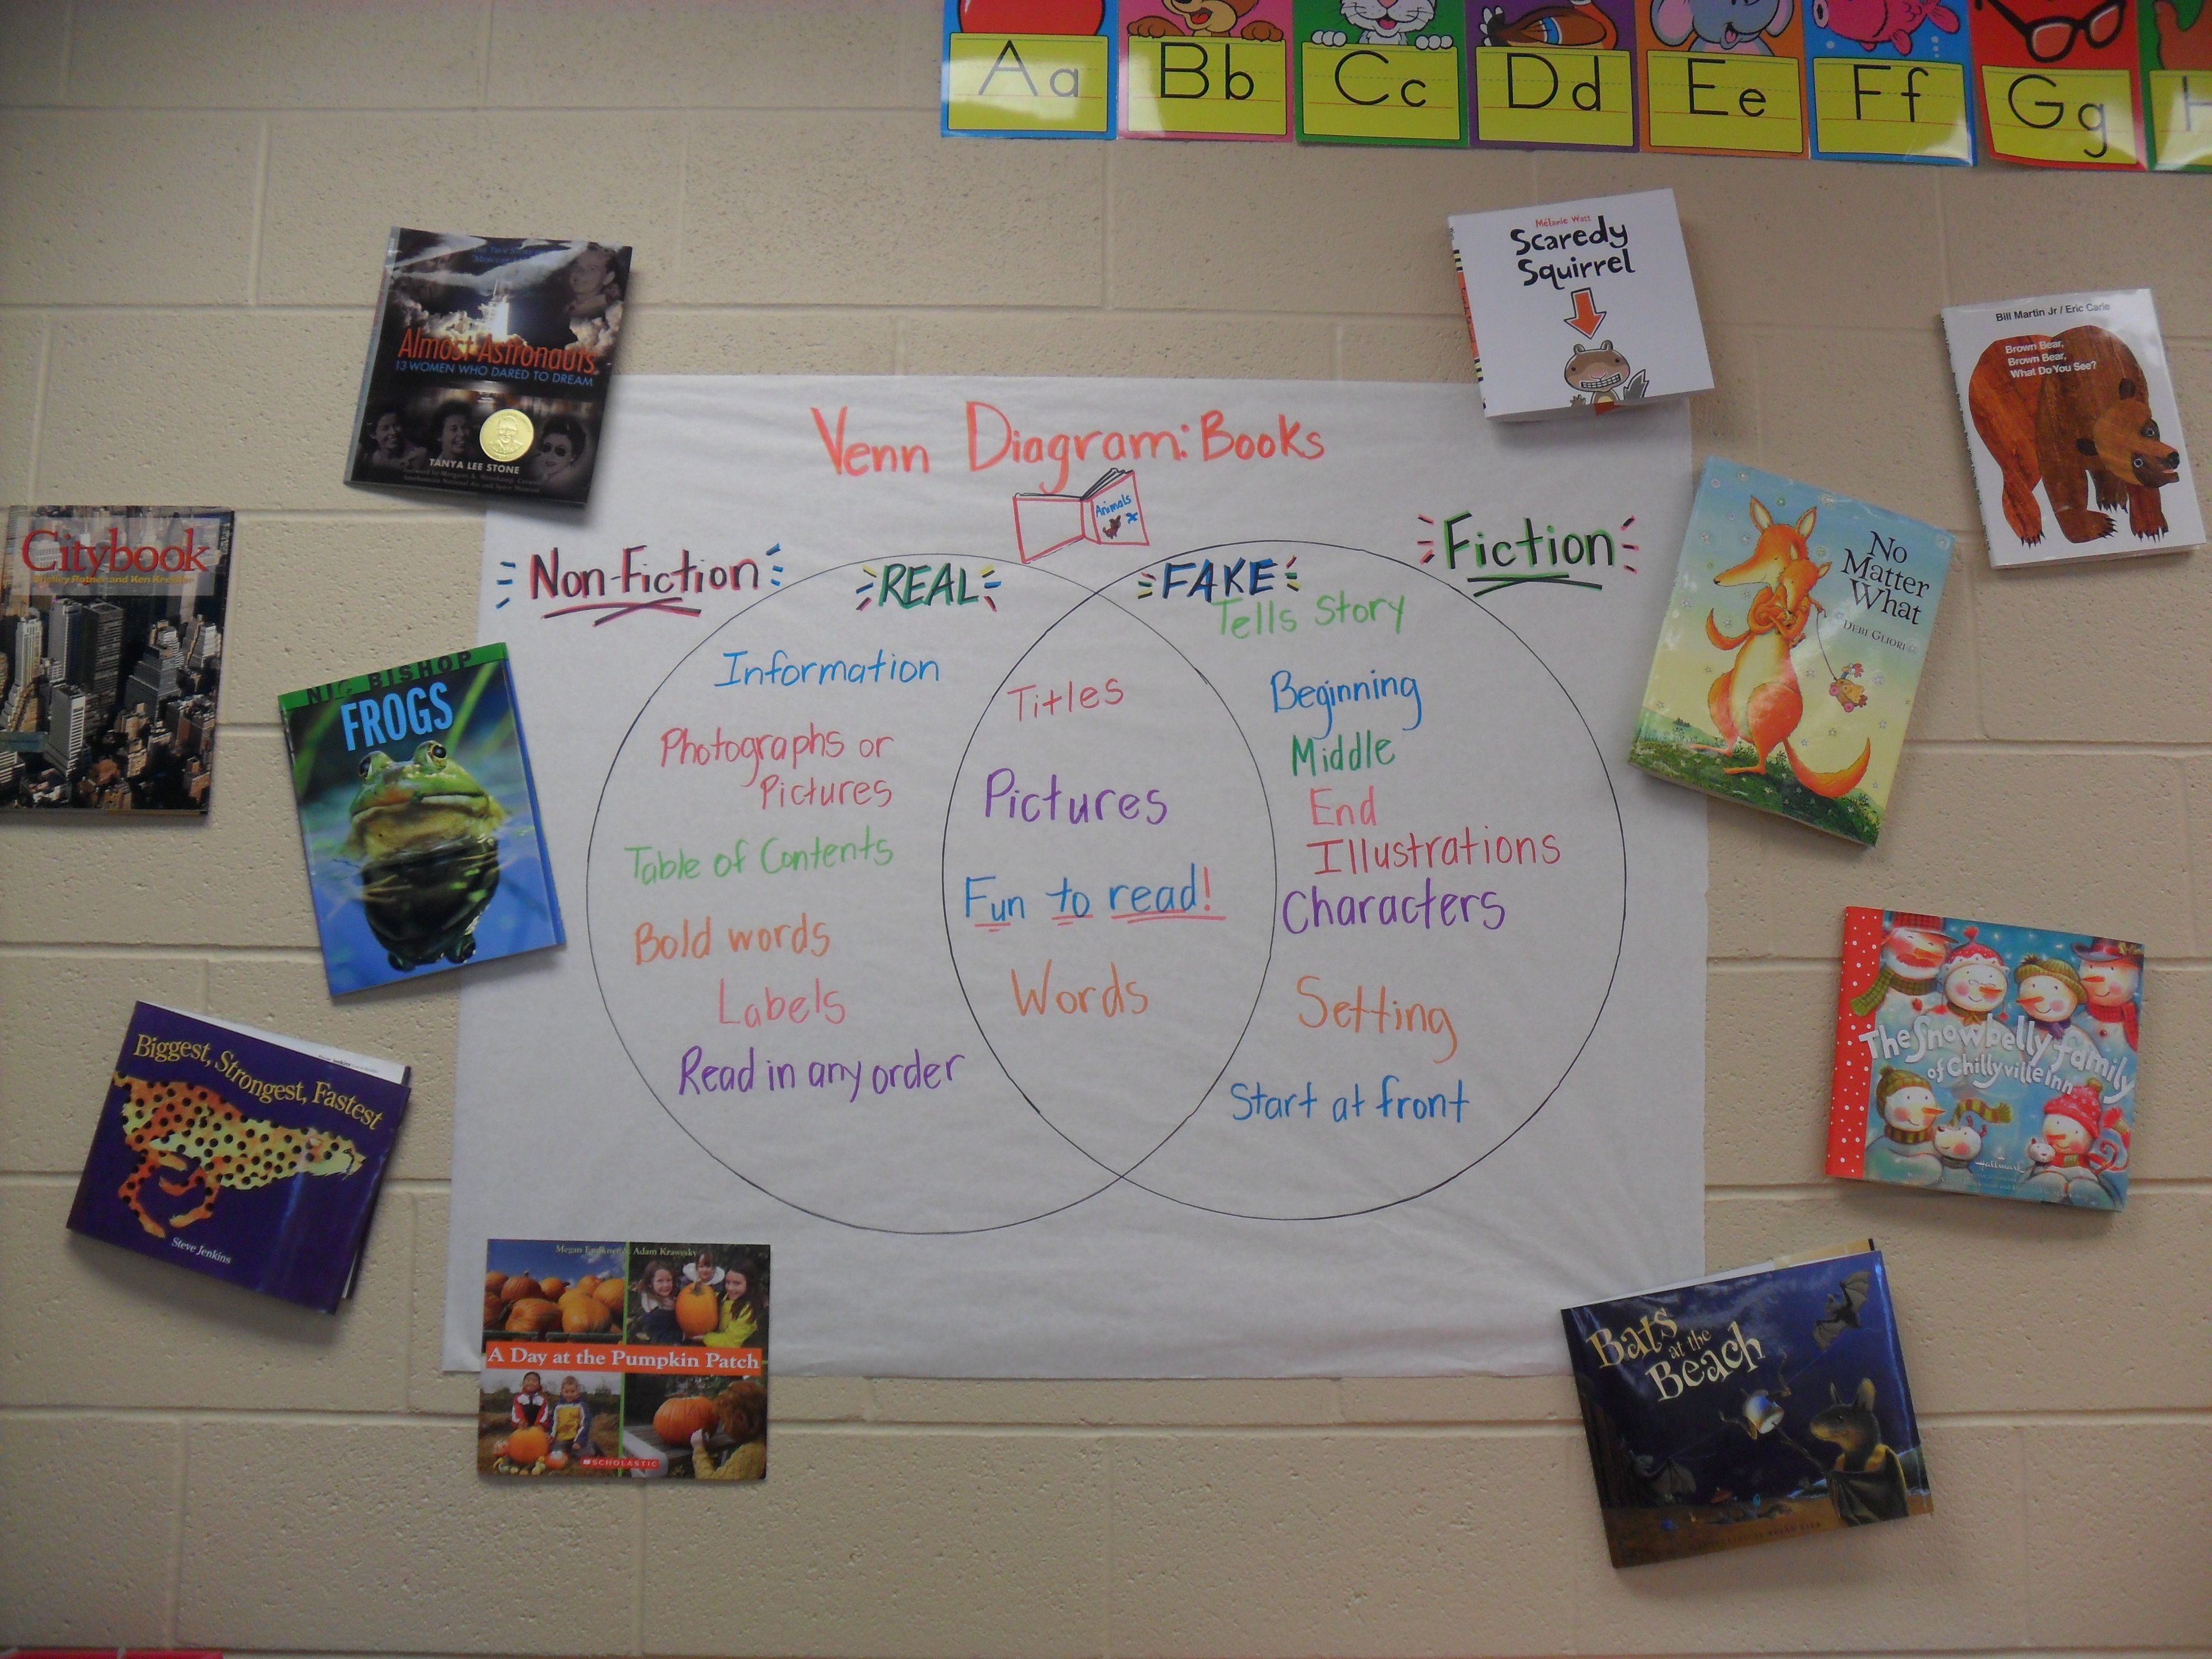 Comparing And Contrasting Non Fiction And Fiction With